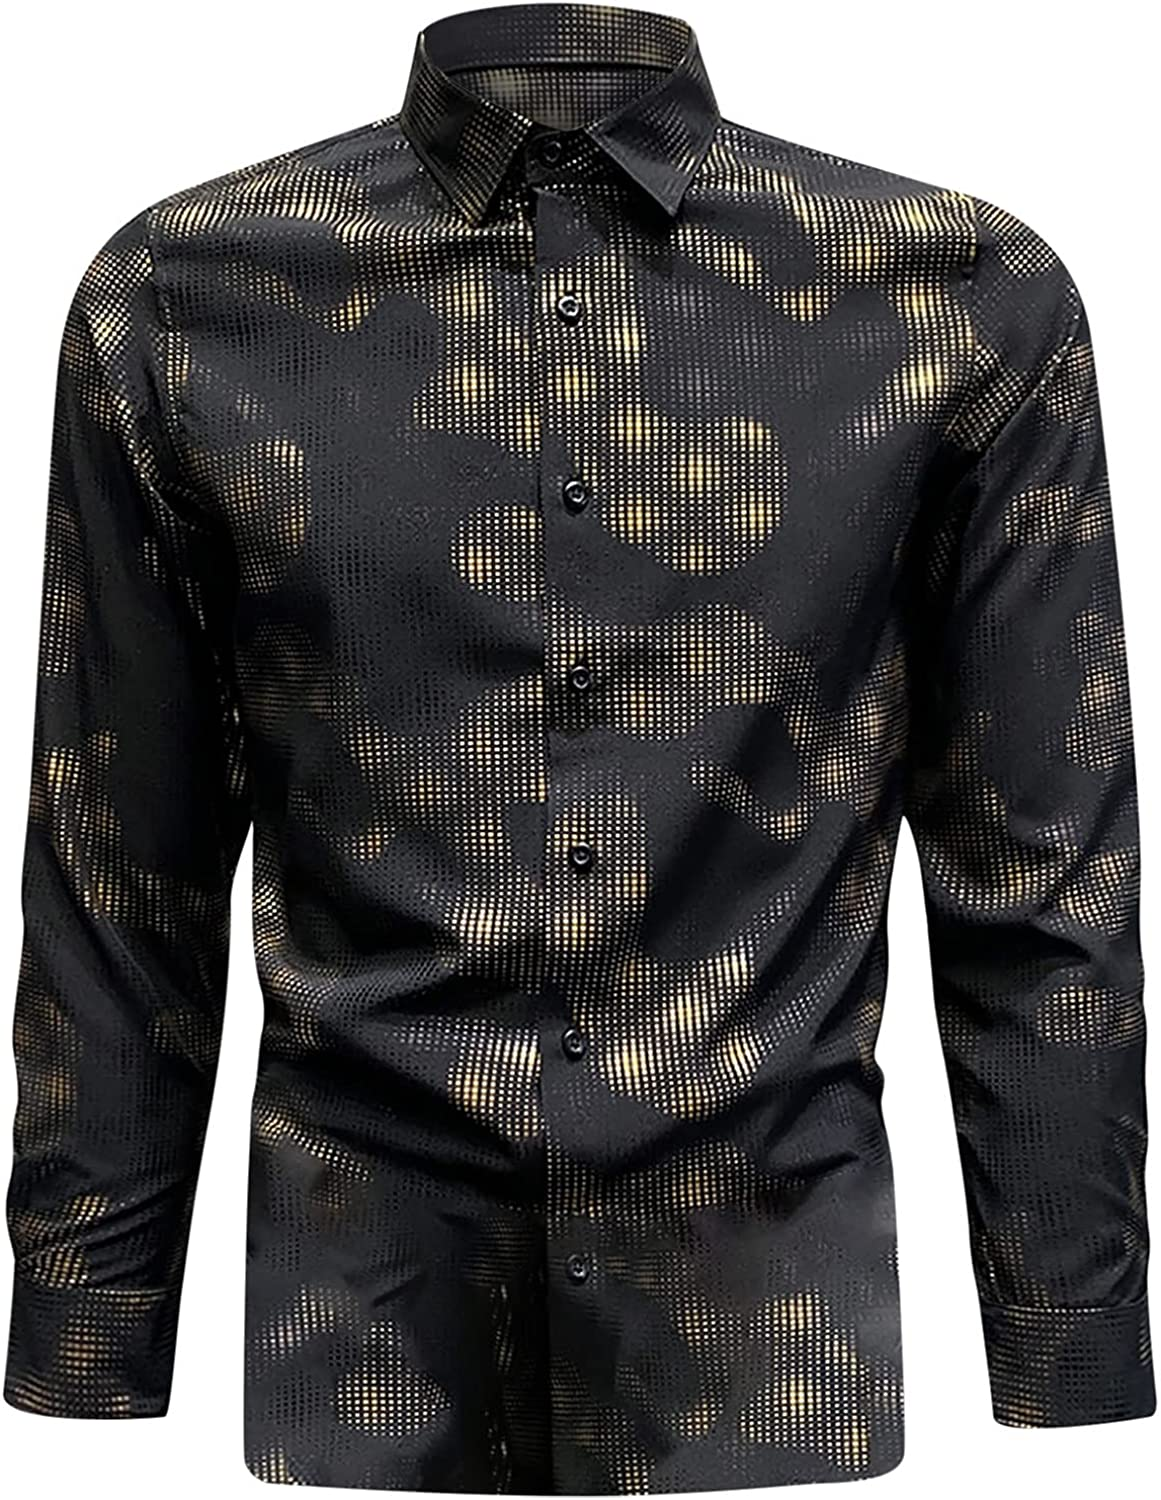 Men's Shirts Luxury Trend Design Slim Fit T-Shirts Long Sleeve Lapel Button up Dress Shirts for Party